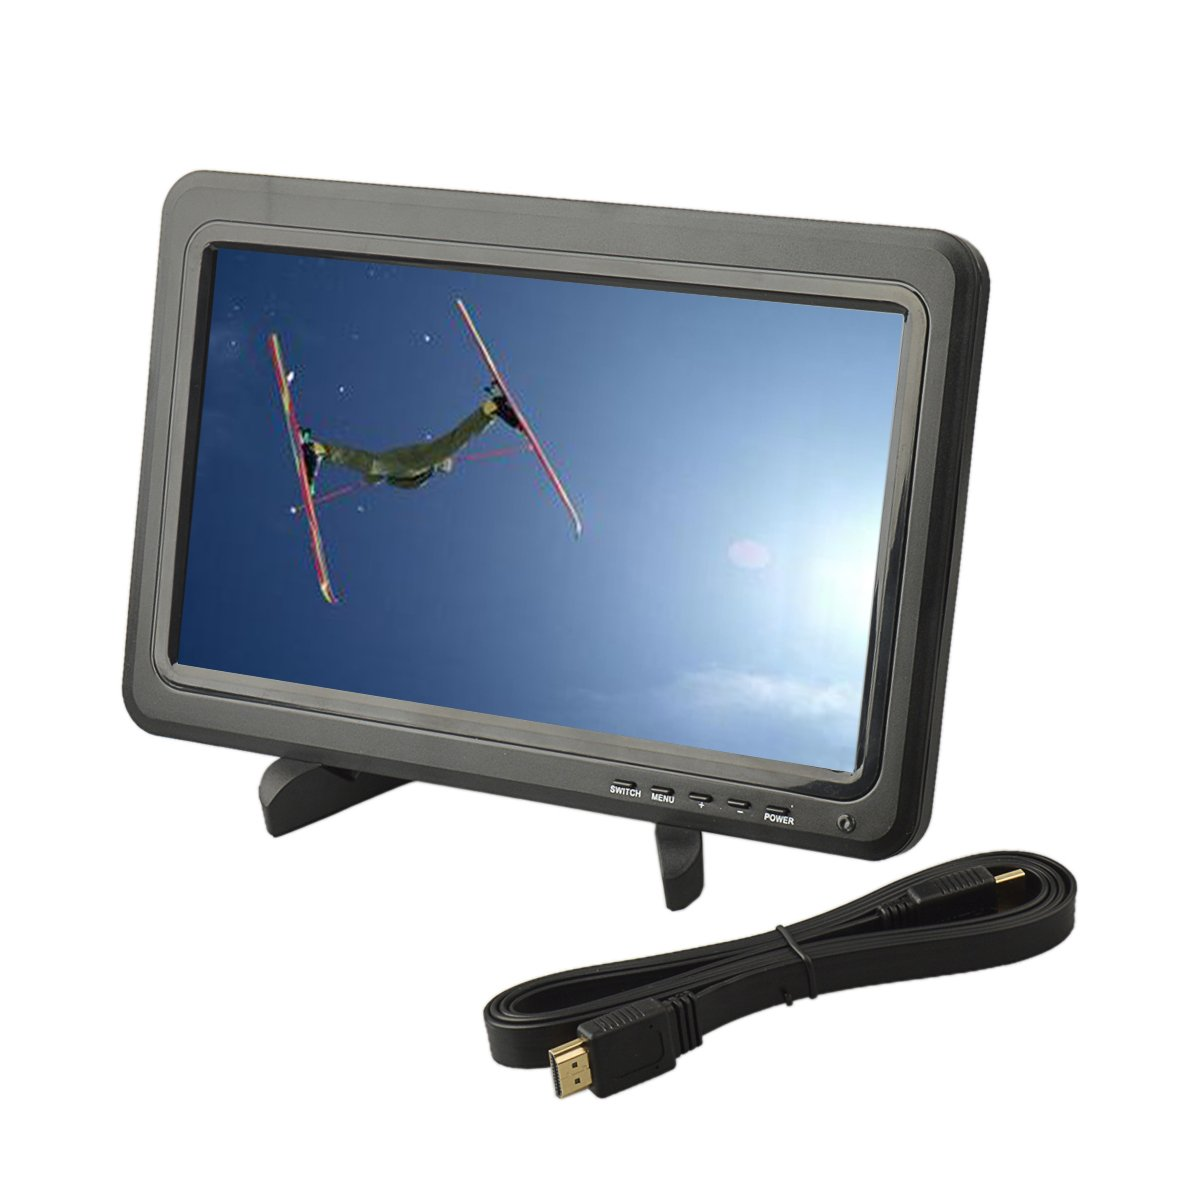 U-Mest®10.1 inches High Resolution 1366*768 IPS LED Panel Screen Display Monitor w/ Collapsible Stand+ HDMI Cable for Raspberry Pi XBOX360 PS4 PS3 Wii U